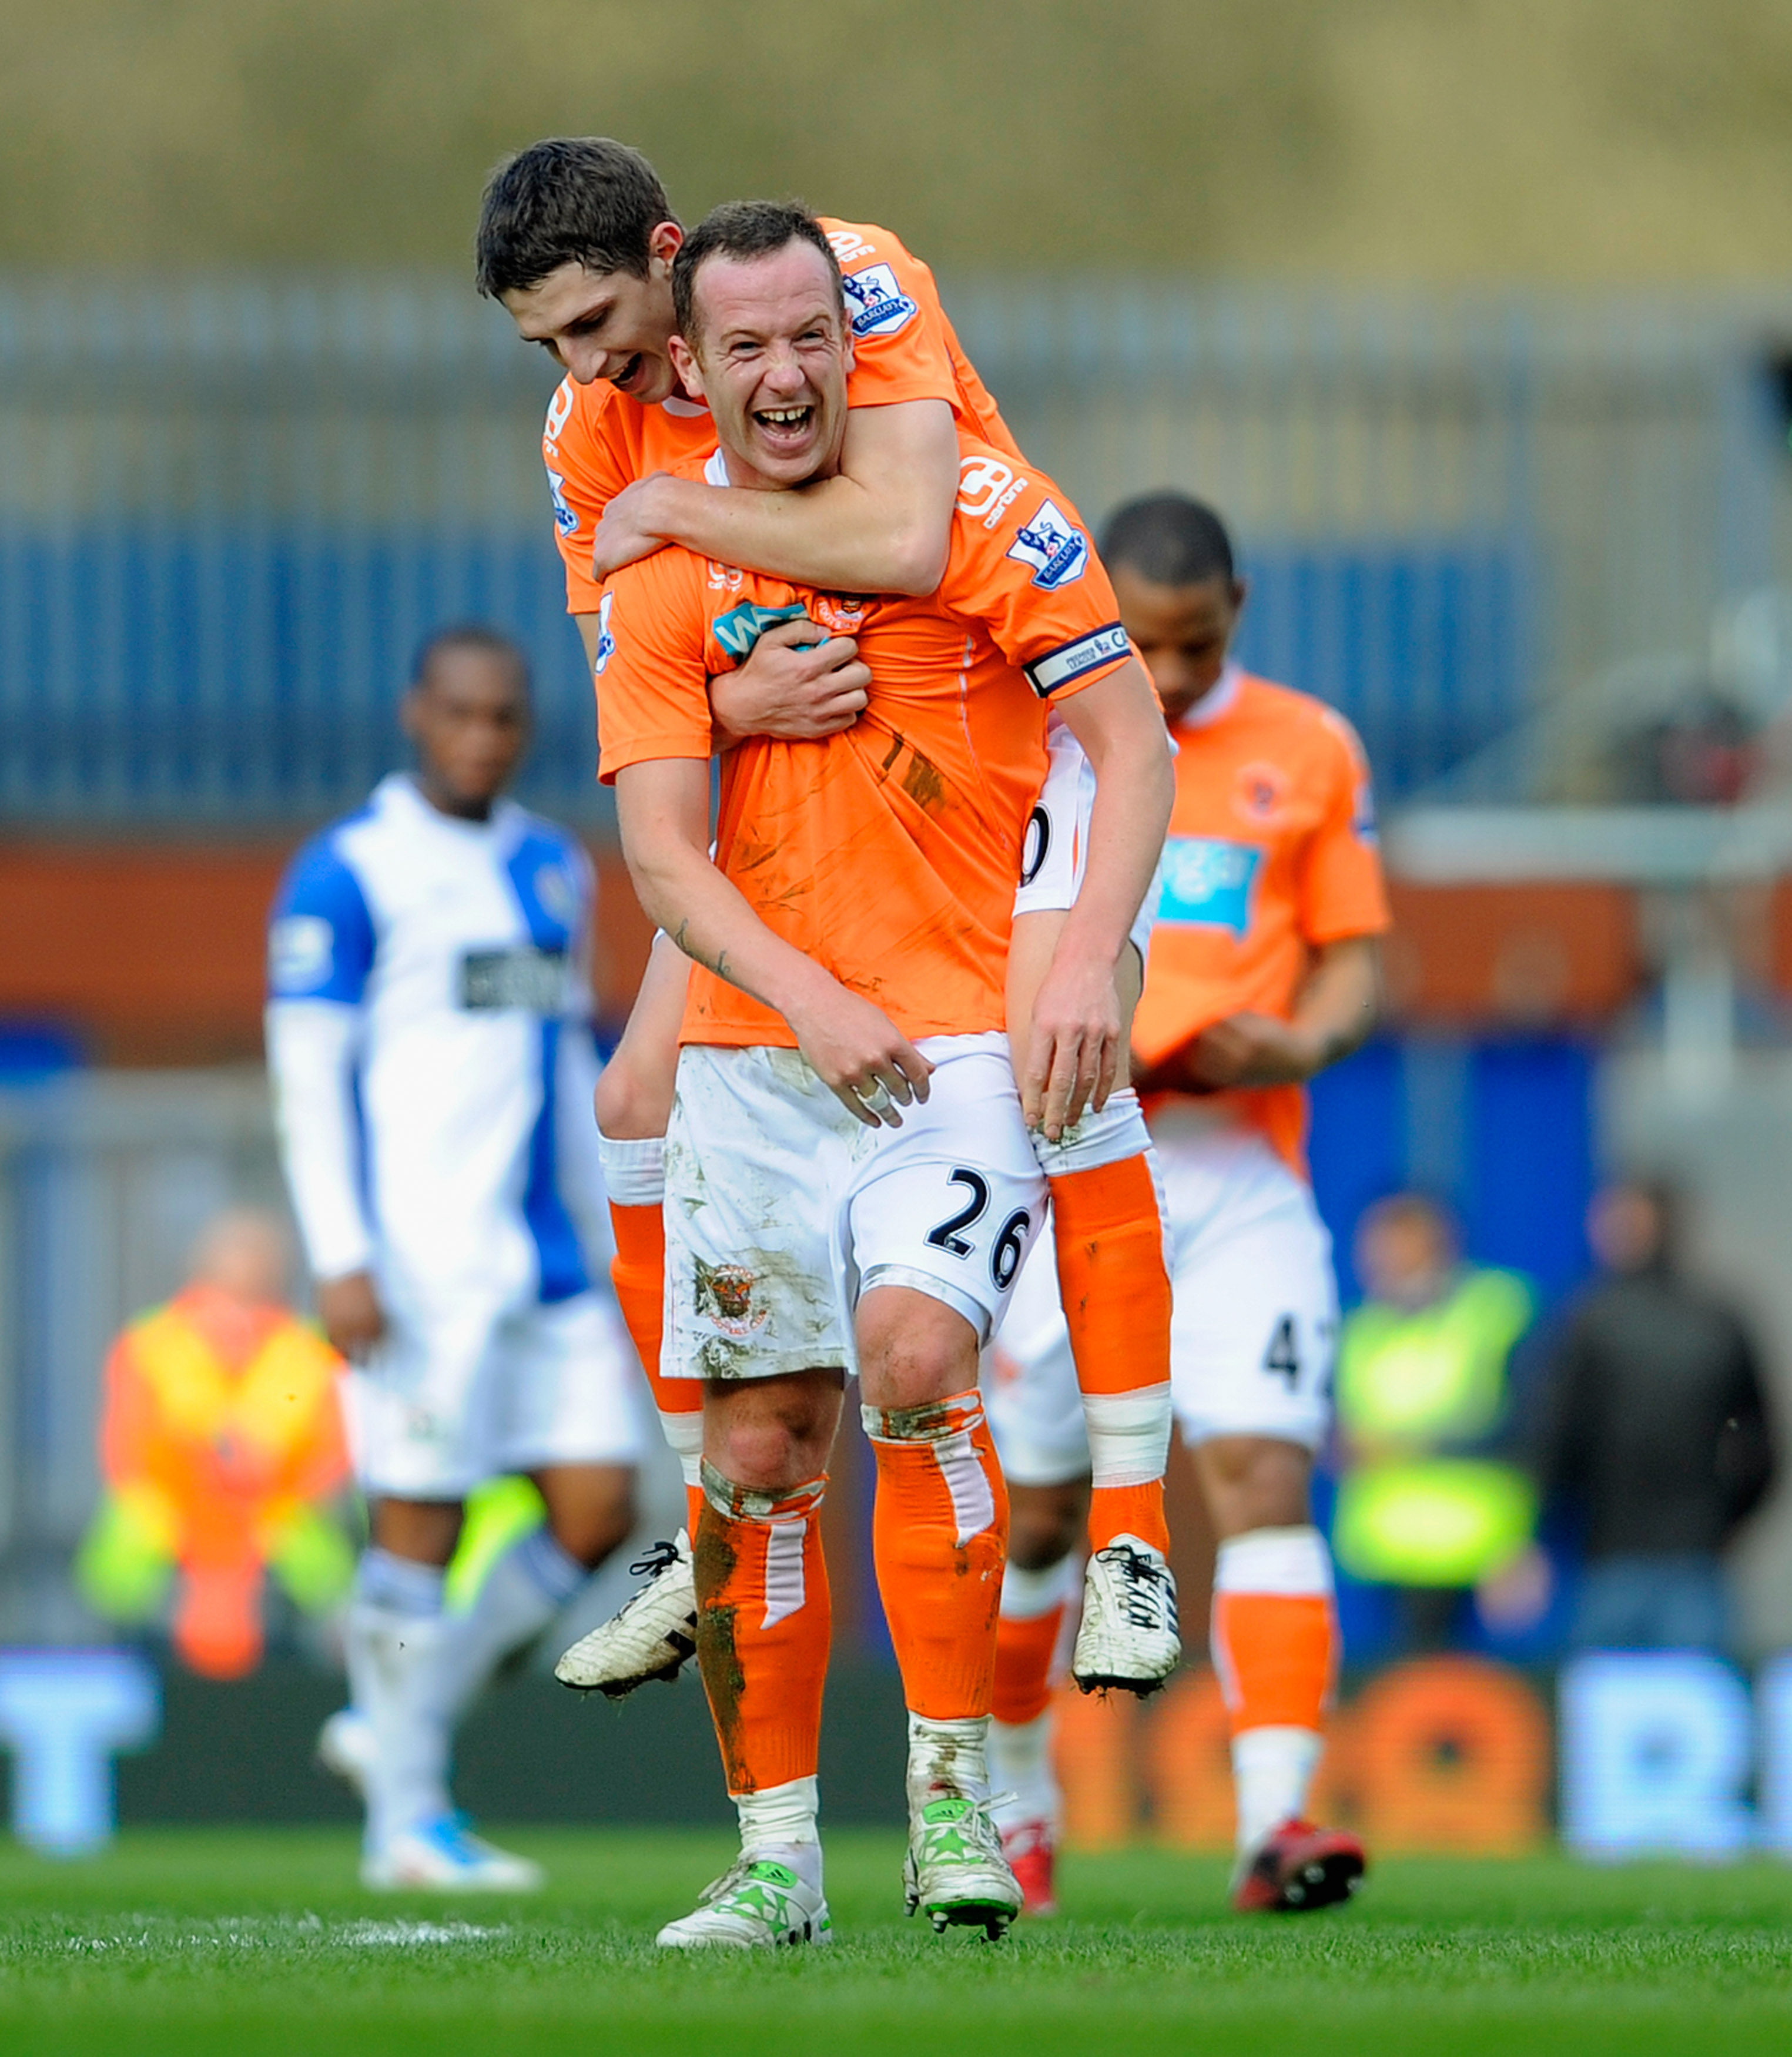 BLACKBURN, ENGLAND - MARCH 19: Charlie Adam of Blackpool celebrates with Craig Cathcart after scoring to make it 2-0 during the Barclays Premier League match between Blackburn Rovers and Blackpool at Ewood Park on March 19, 2011 in Blackburn, England.  (P